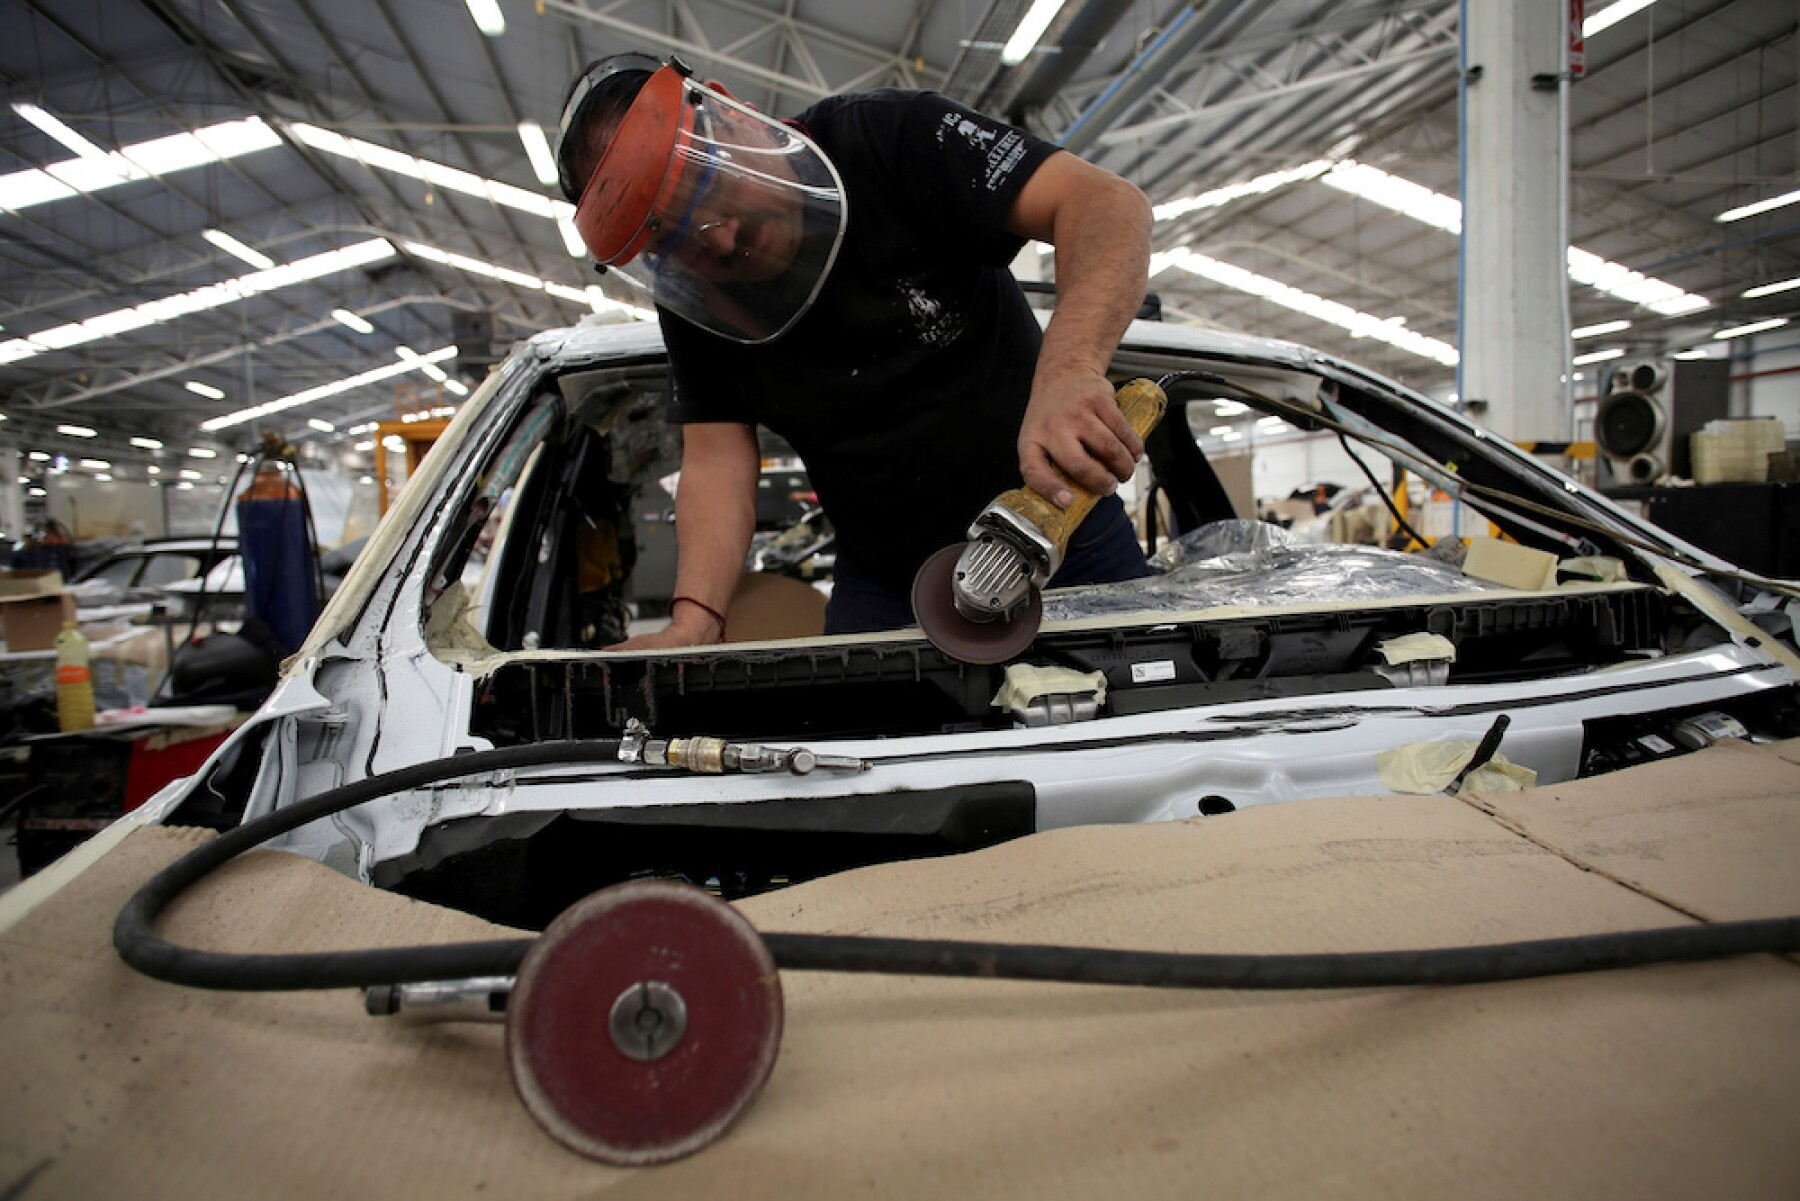 FILE PHOTO: An employee works on a dismantled chasis of a vehicle before armoring it at the garage of Blindajes EPEL company in Mexico City